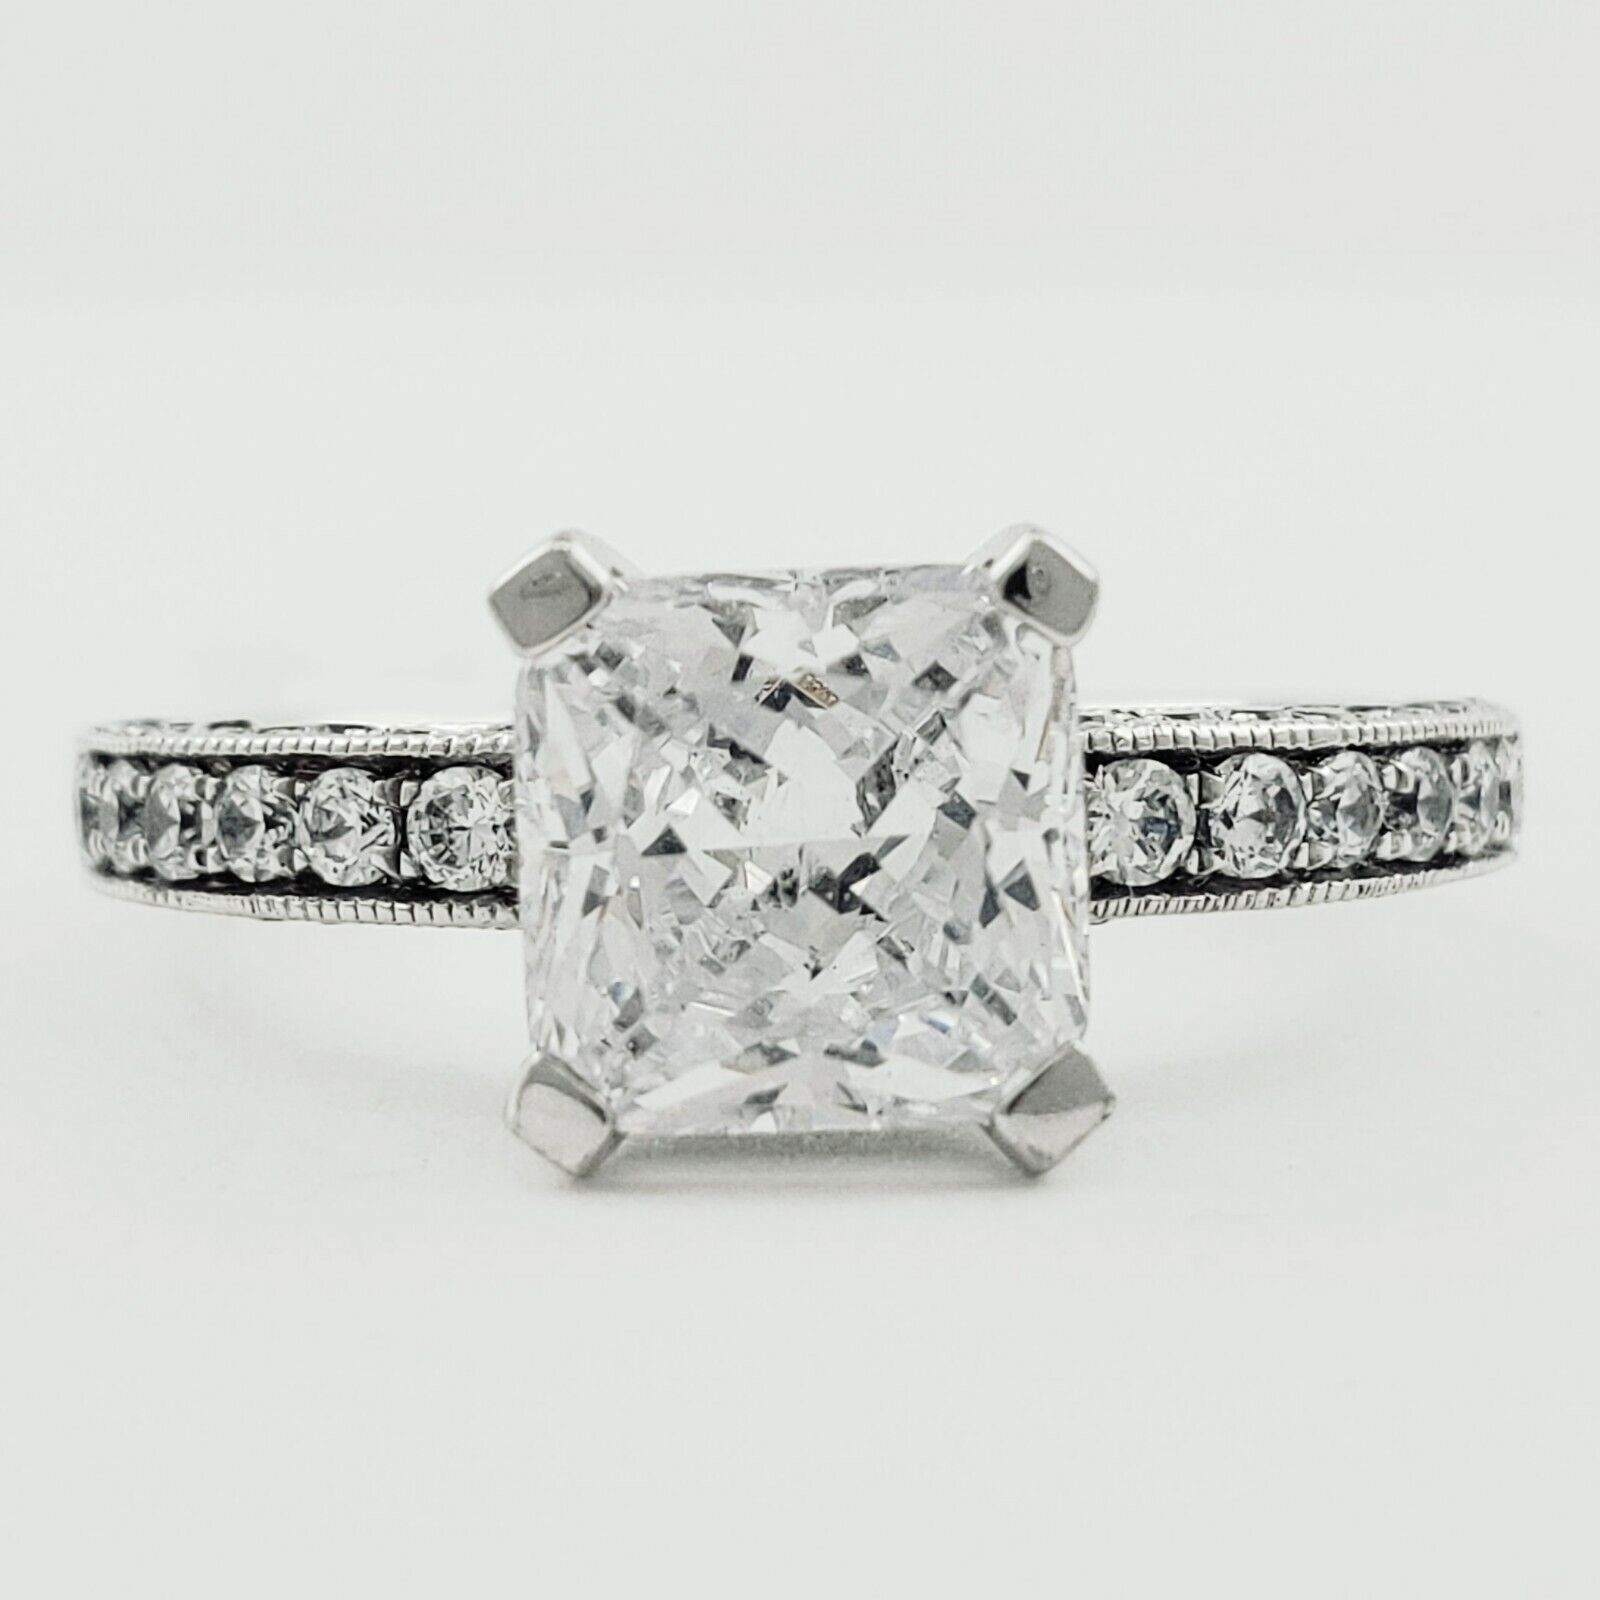 GIA Certified Diamond Engagement Ring 1.97 carat Cushion Shape 18K White Gold